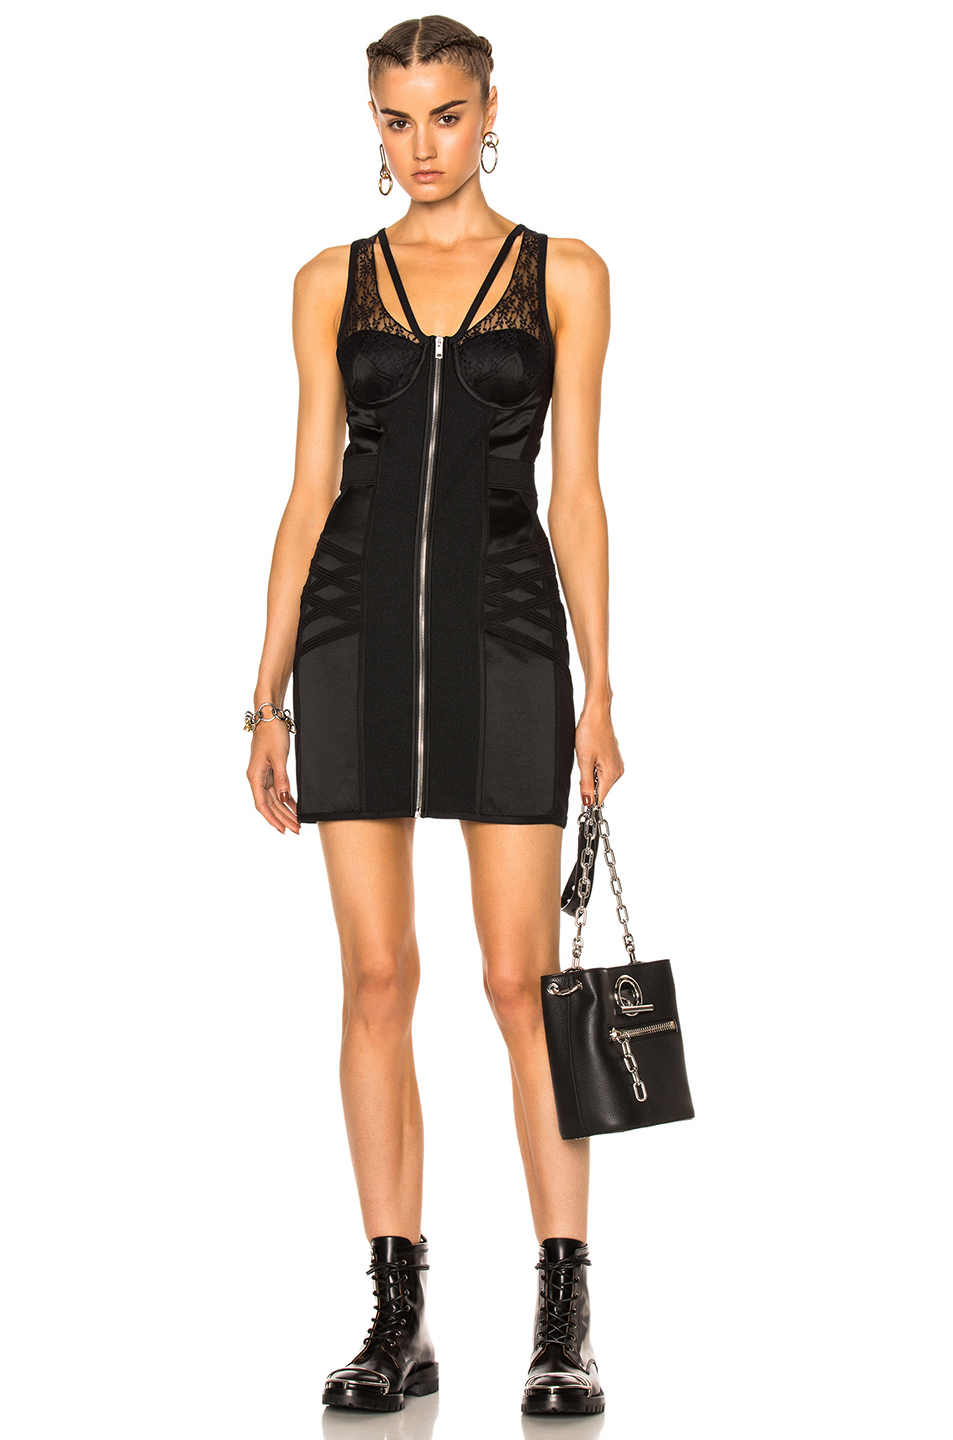 Photo of Alexander Wang Bodycon Bustier Mini Dress in Black online sales